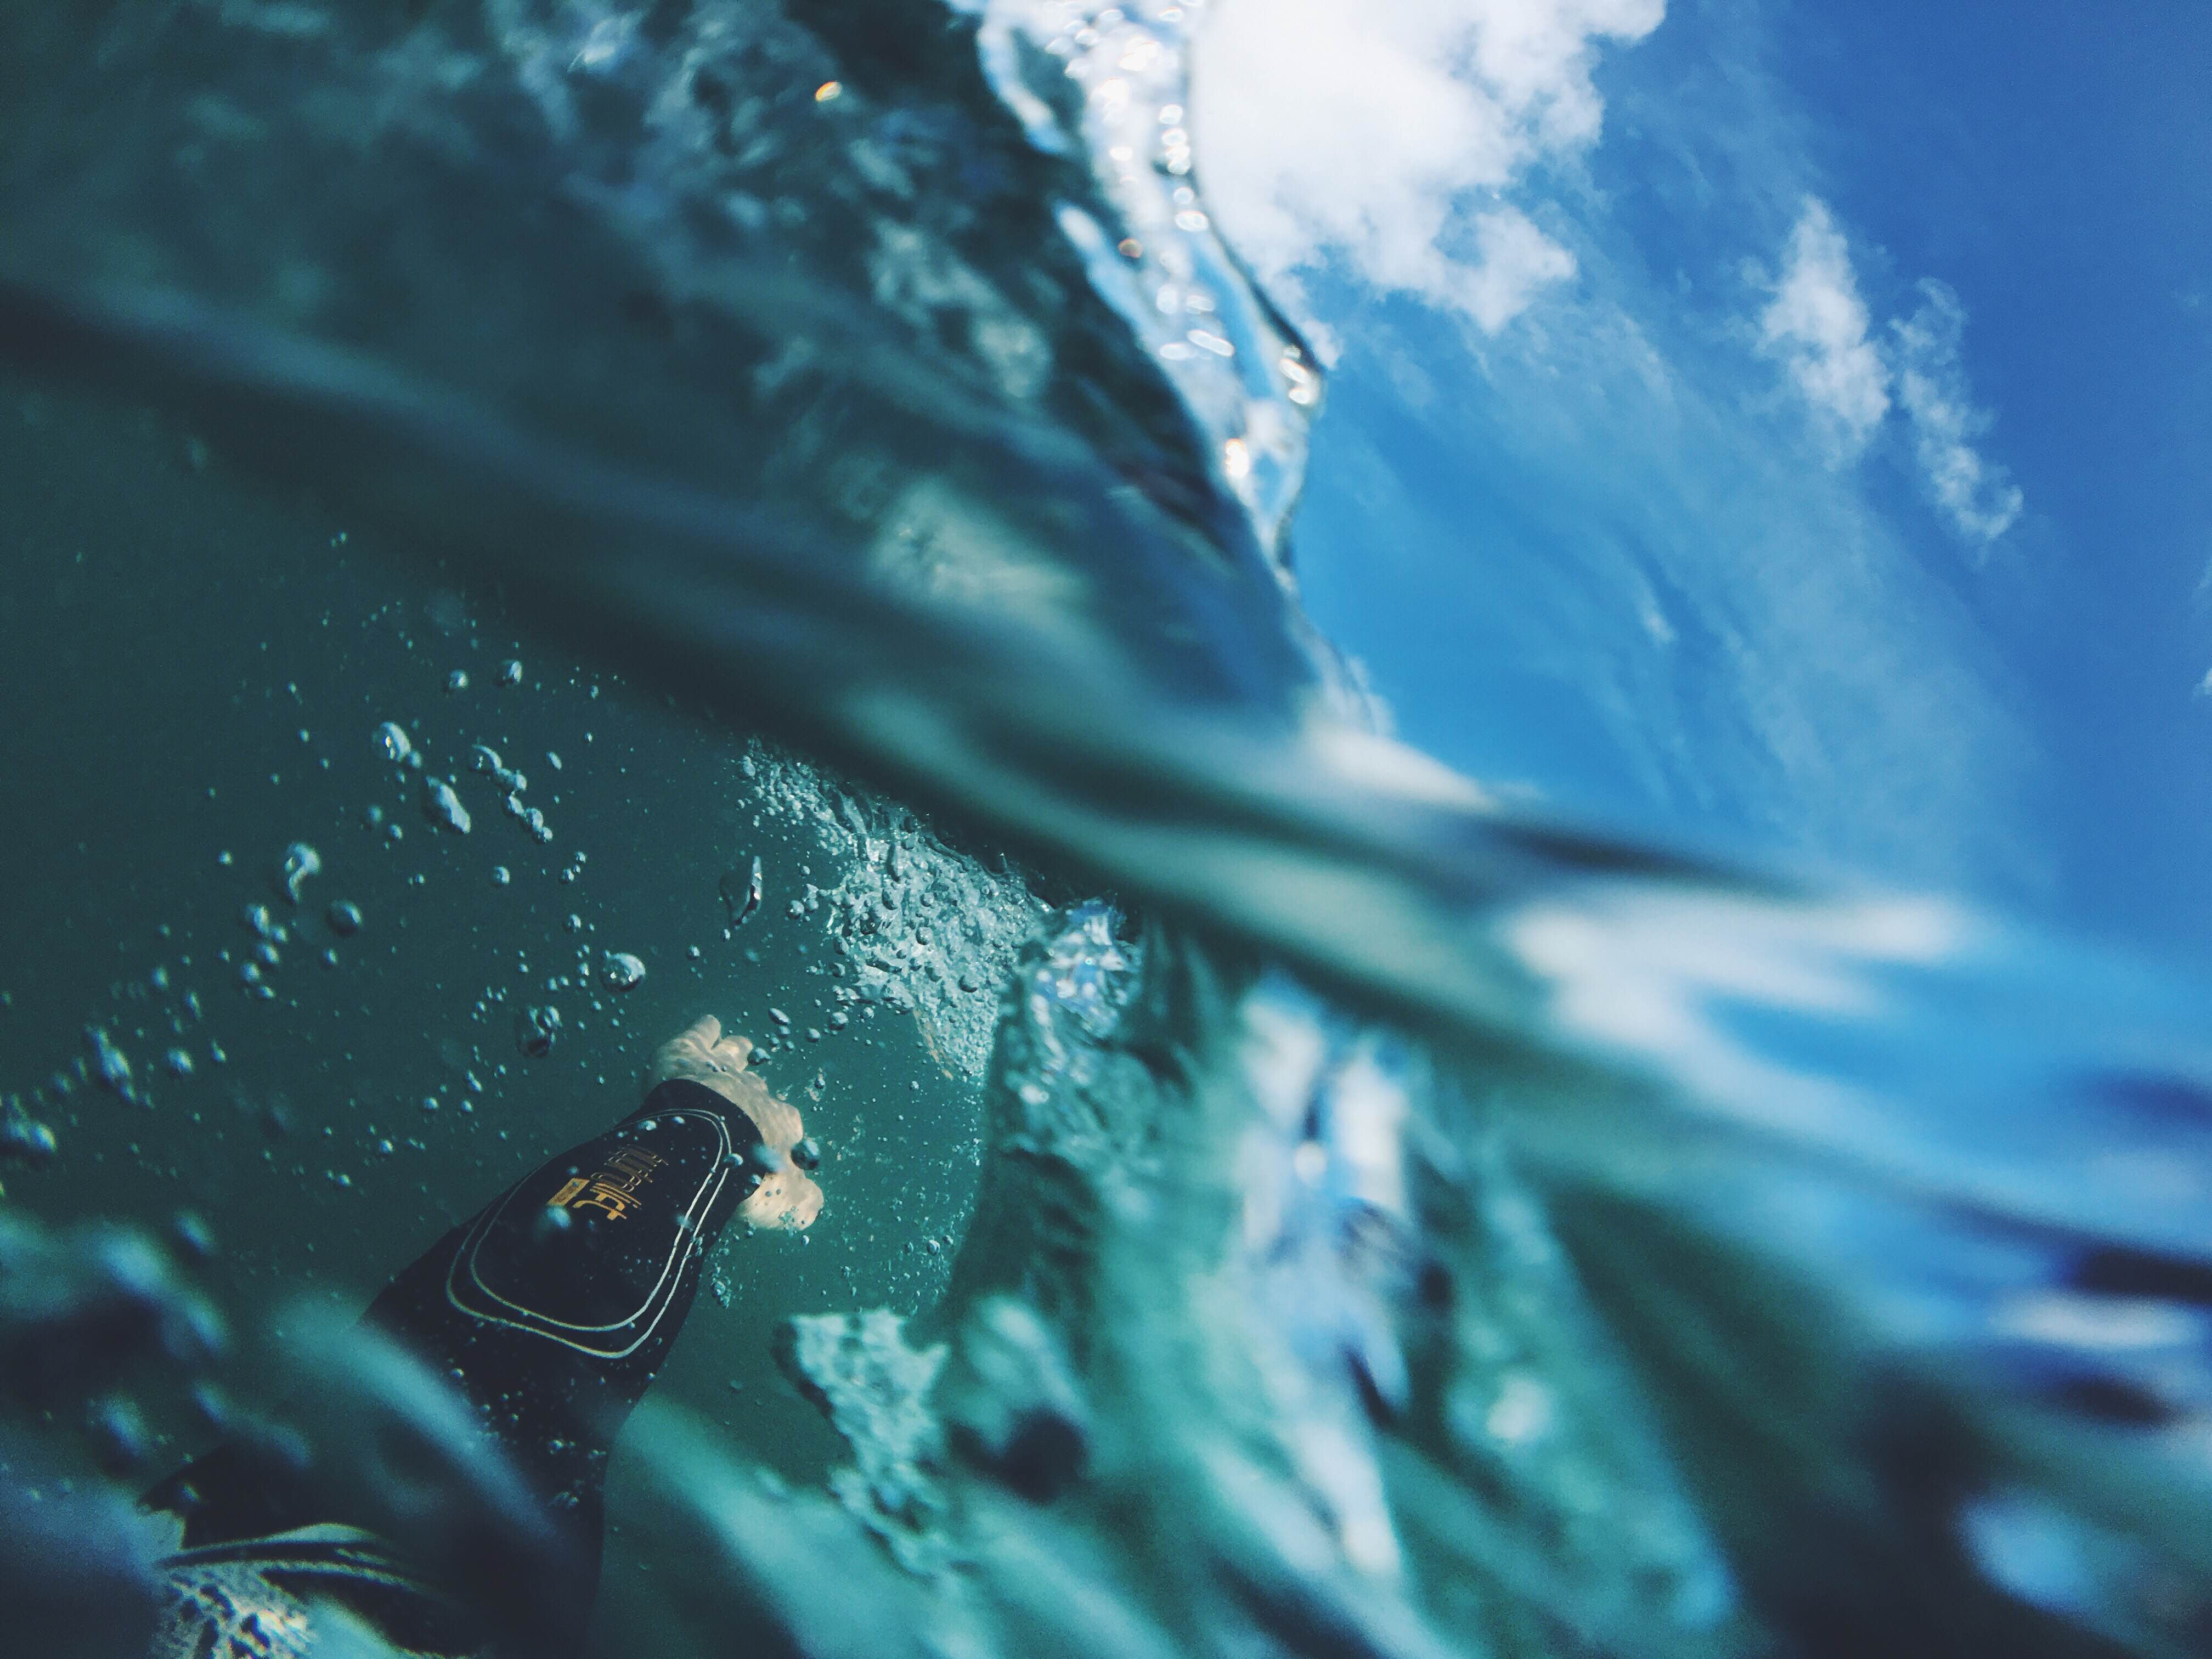 underwater photography of diver diving on body of water during daytime